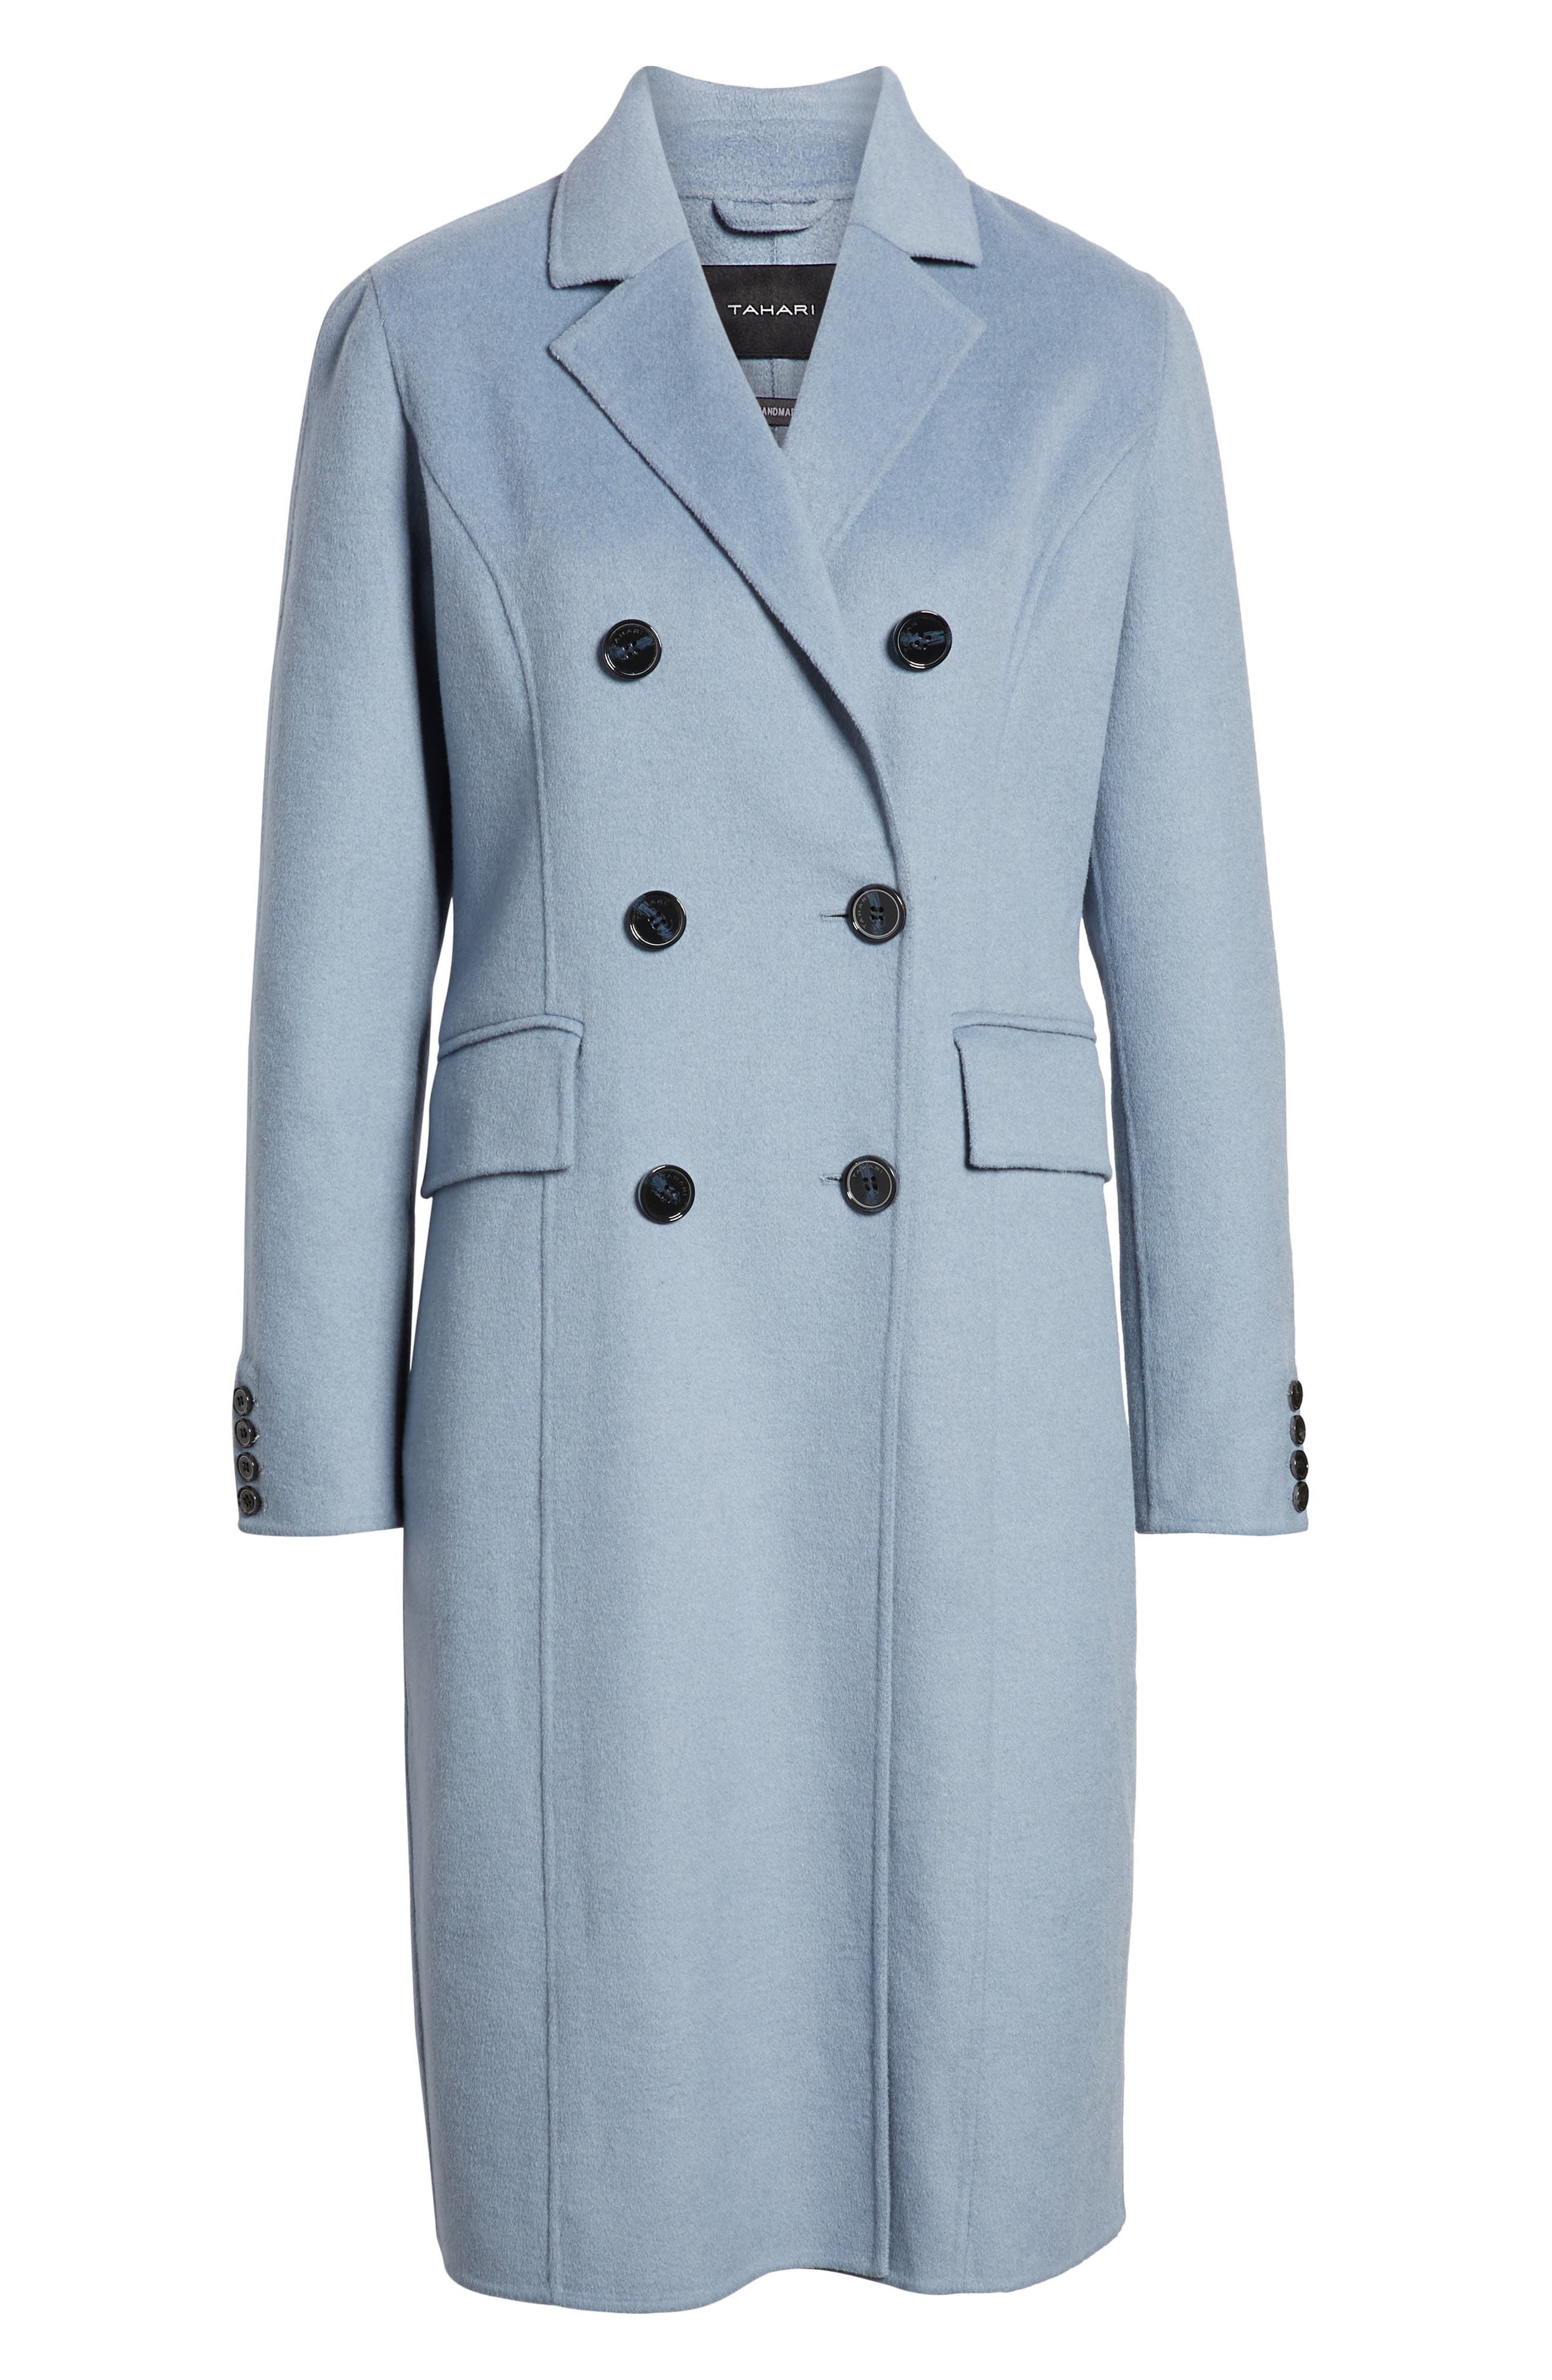 Taylor Double Breasted Wool Coat,                             Alternate thumbnail 6, color,                             PALE BLUE